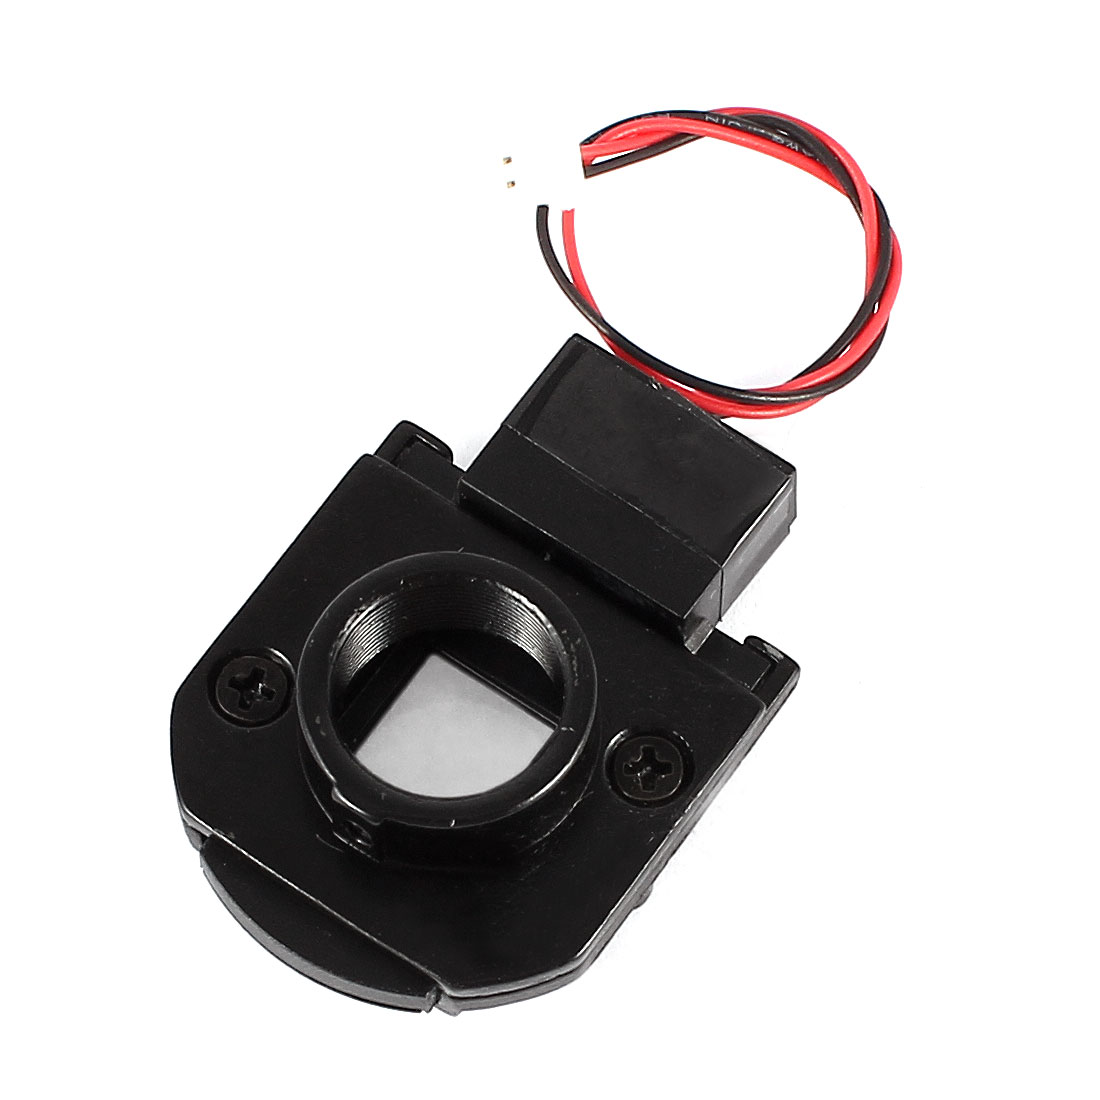 Black Infrared IR-CUT Filter Switch for CCD Surveillance Big Lens Housing